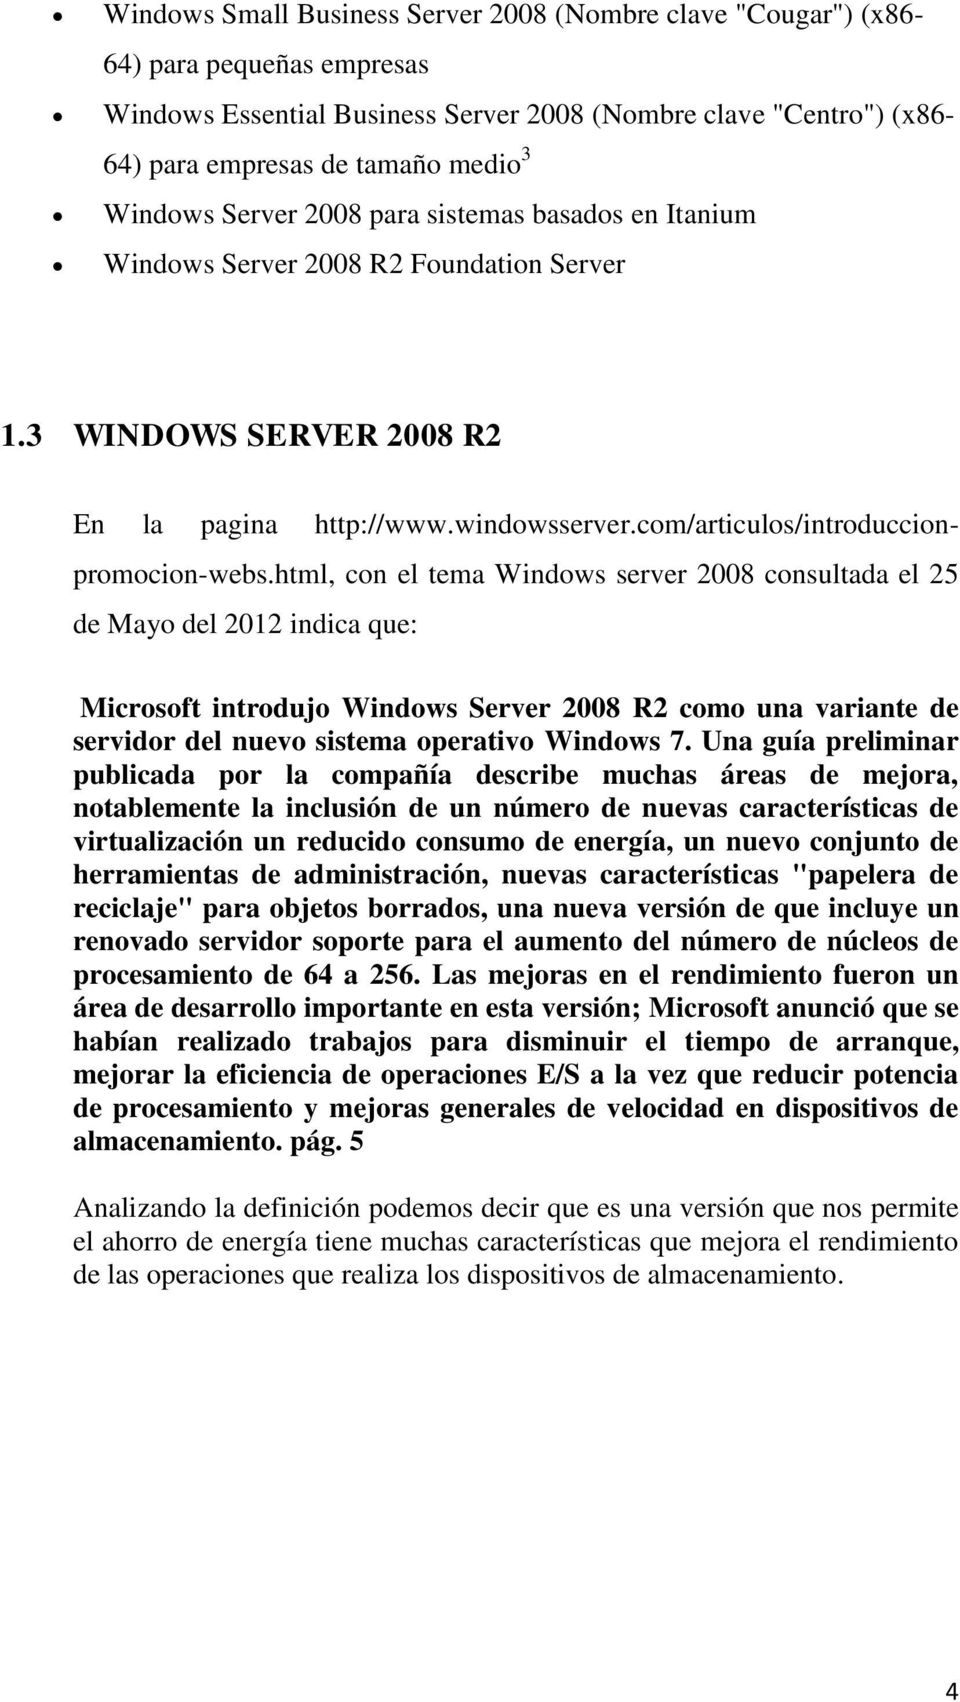 html, con el tema Windows server 2008 consultada el 25 de Mayo del 2012 indica que: Microsoft introdujo Windows Server 2008 R2 como una variante de servidor del nuevo sistema operativo Windows 7.